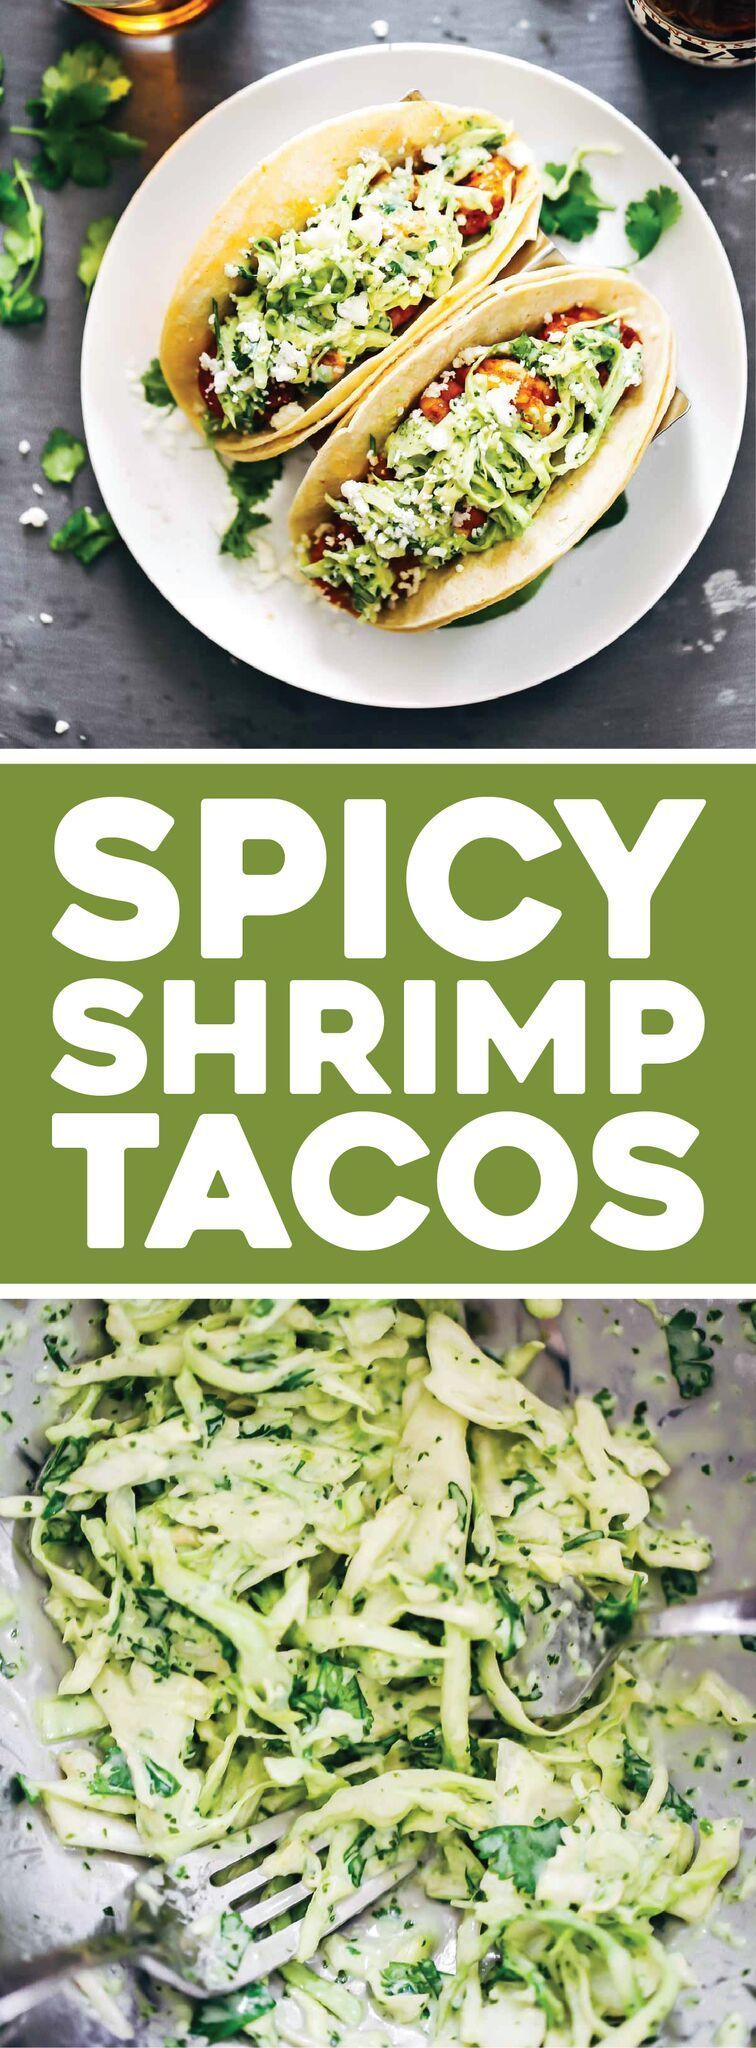 Shrimp Tacos with Garlic Cilantro Lime Slaw - ready in about 30 minutes and loaded with flavor and texture. SO YUM! |